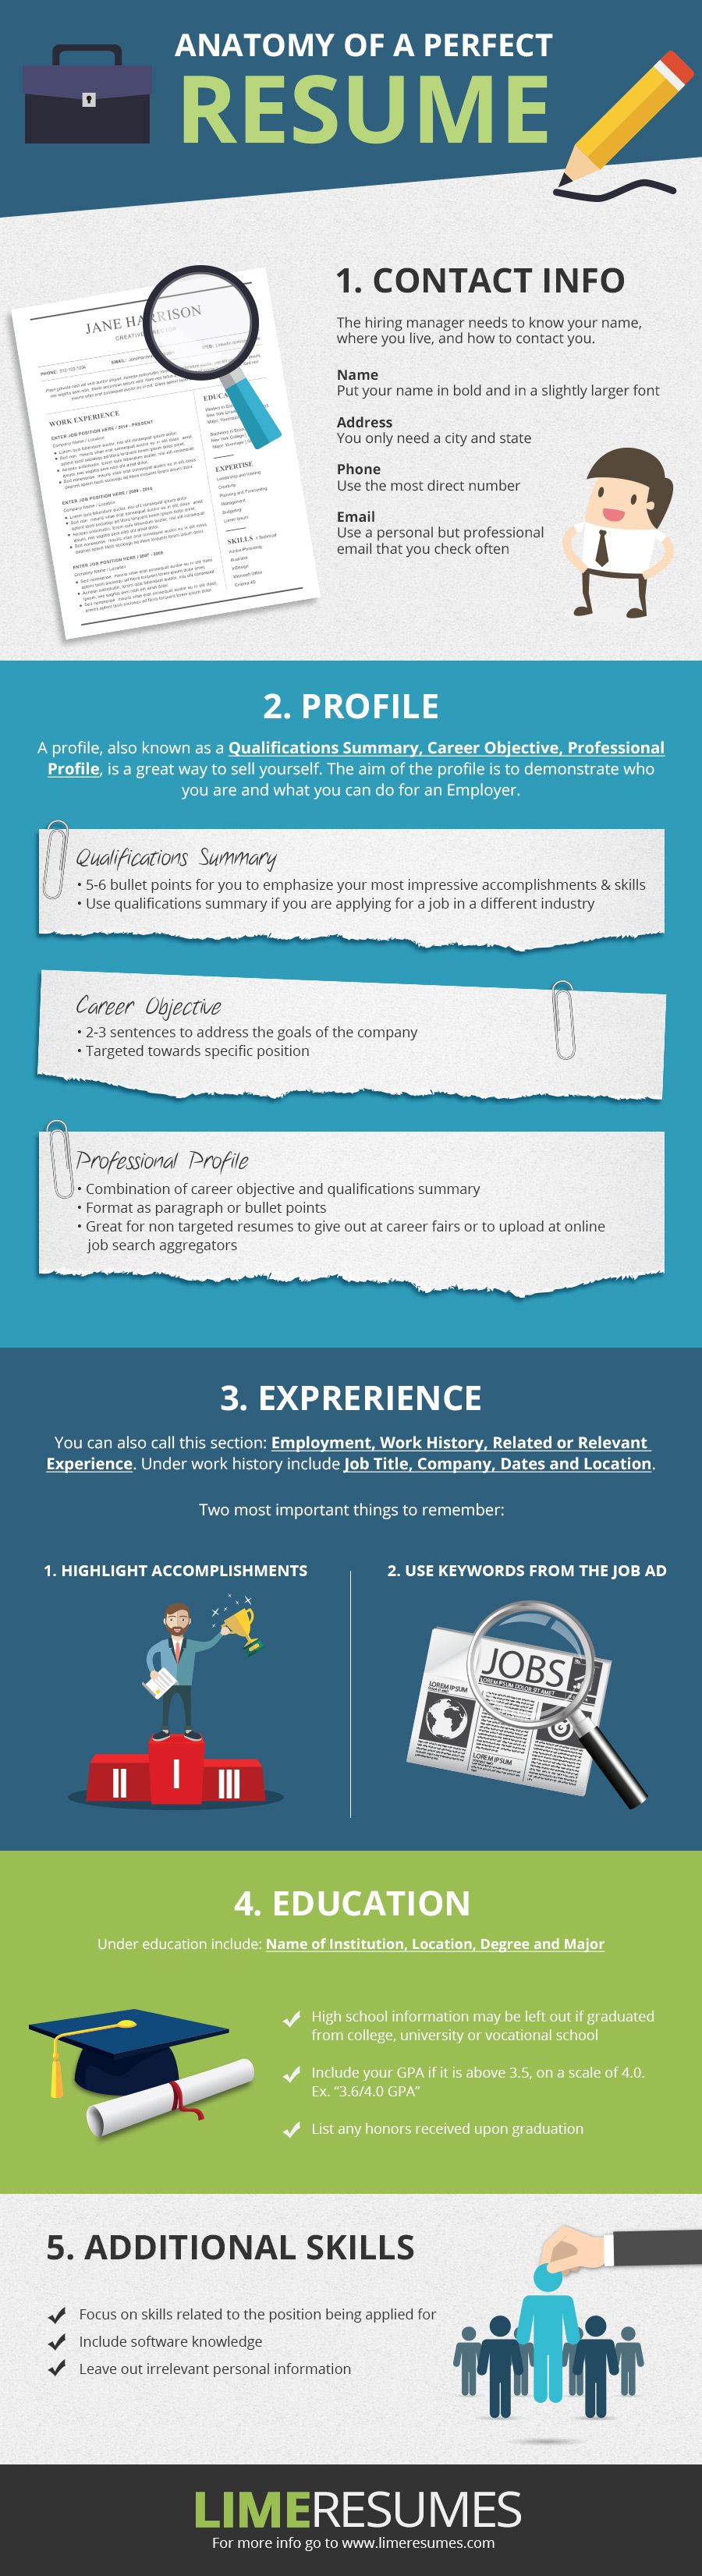 Resume Examples for Job Seekers in Any Industry | Perfect resume ...